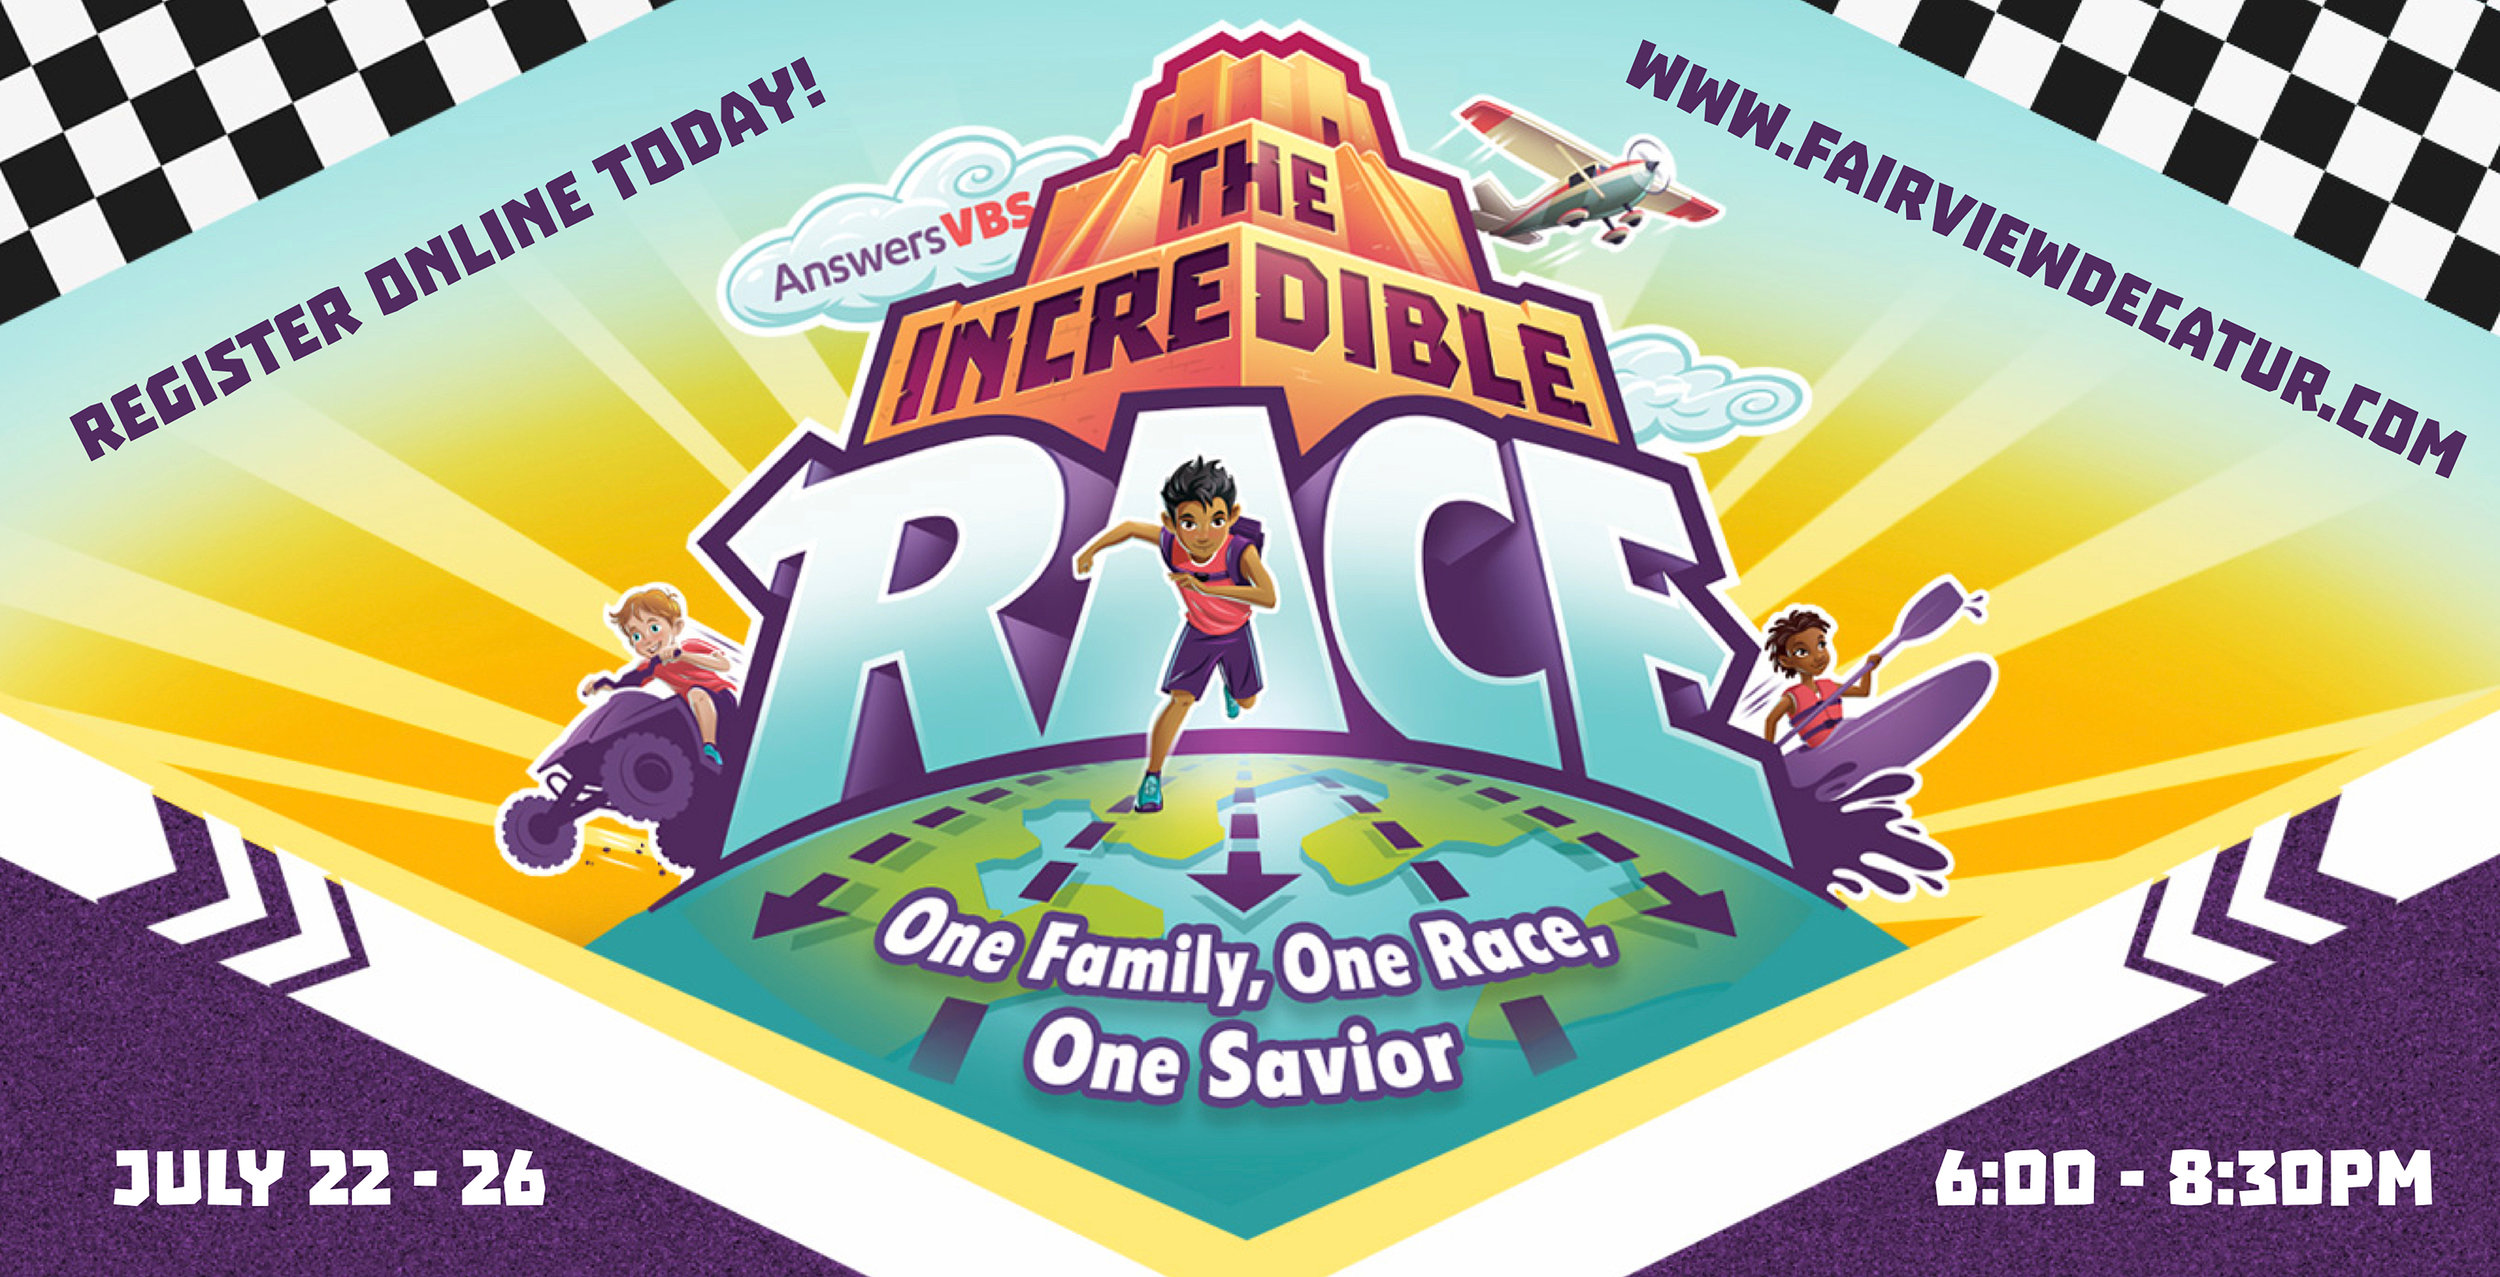 Join us for VBS this Summer! - You're invited to VBS @ Fairview!